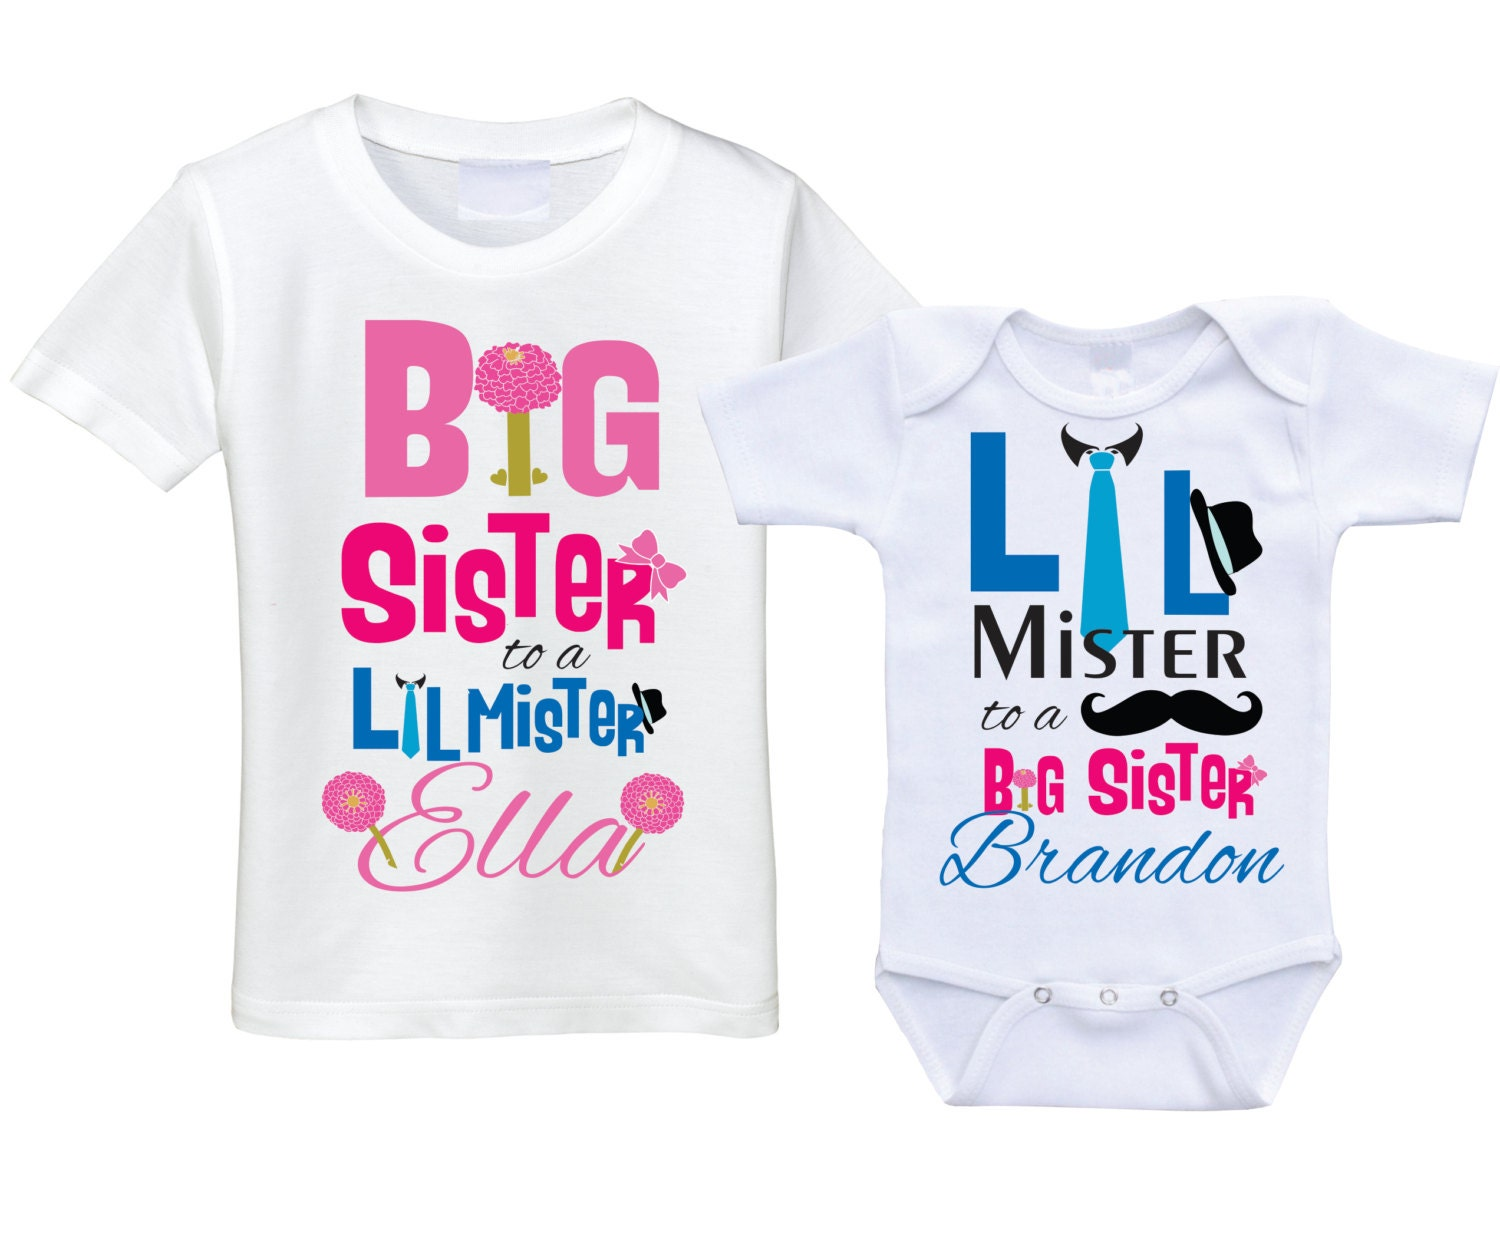 Personalized Big sister Little brother shirts matching sibling